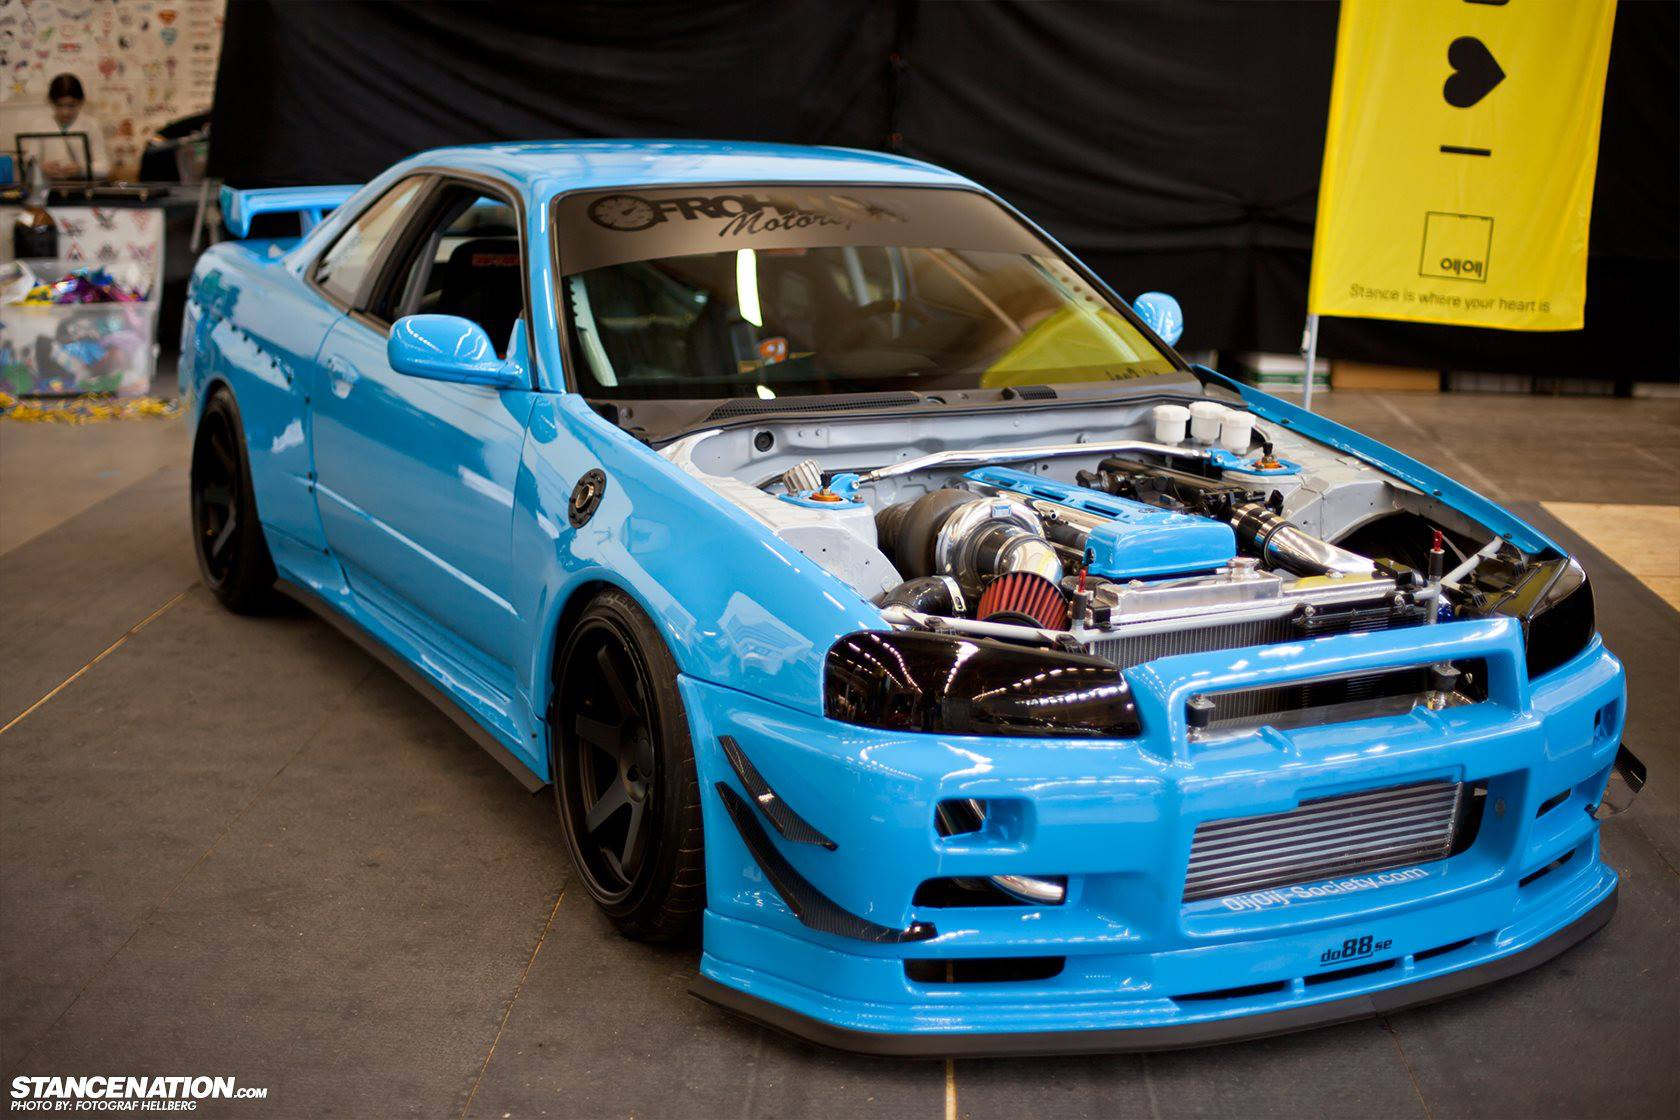 nissan skyline r34 tuning 3 tuning. Black Bedroom Furniture Sets. Home Design Ideas